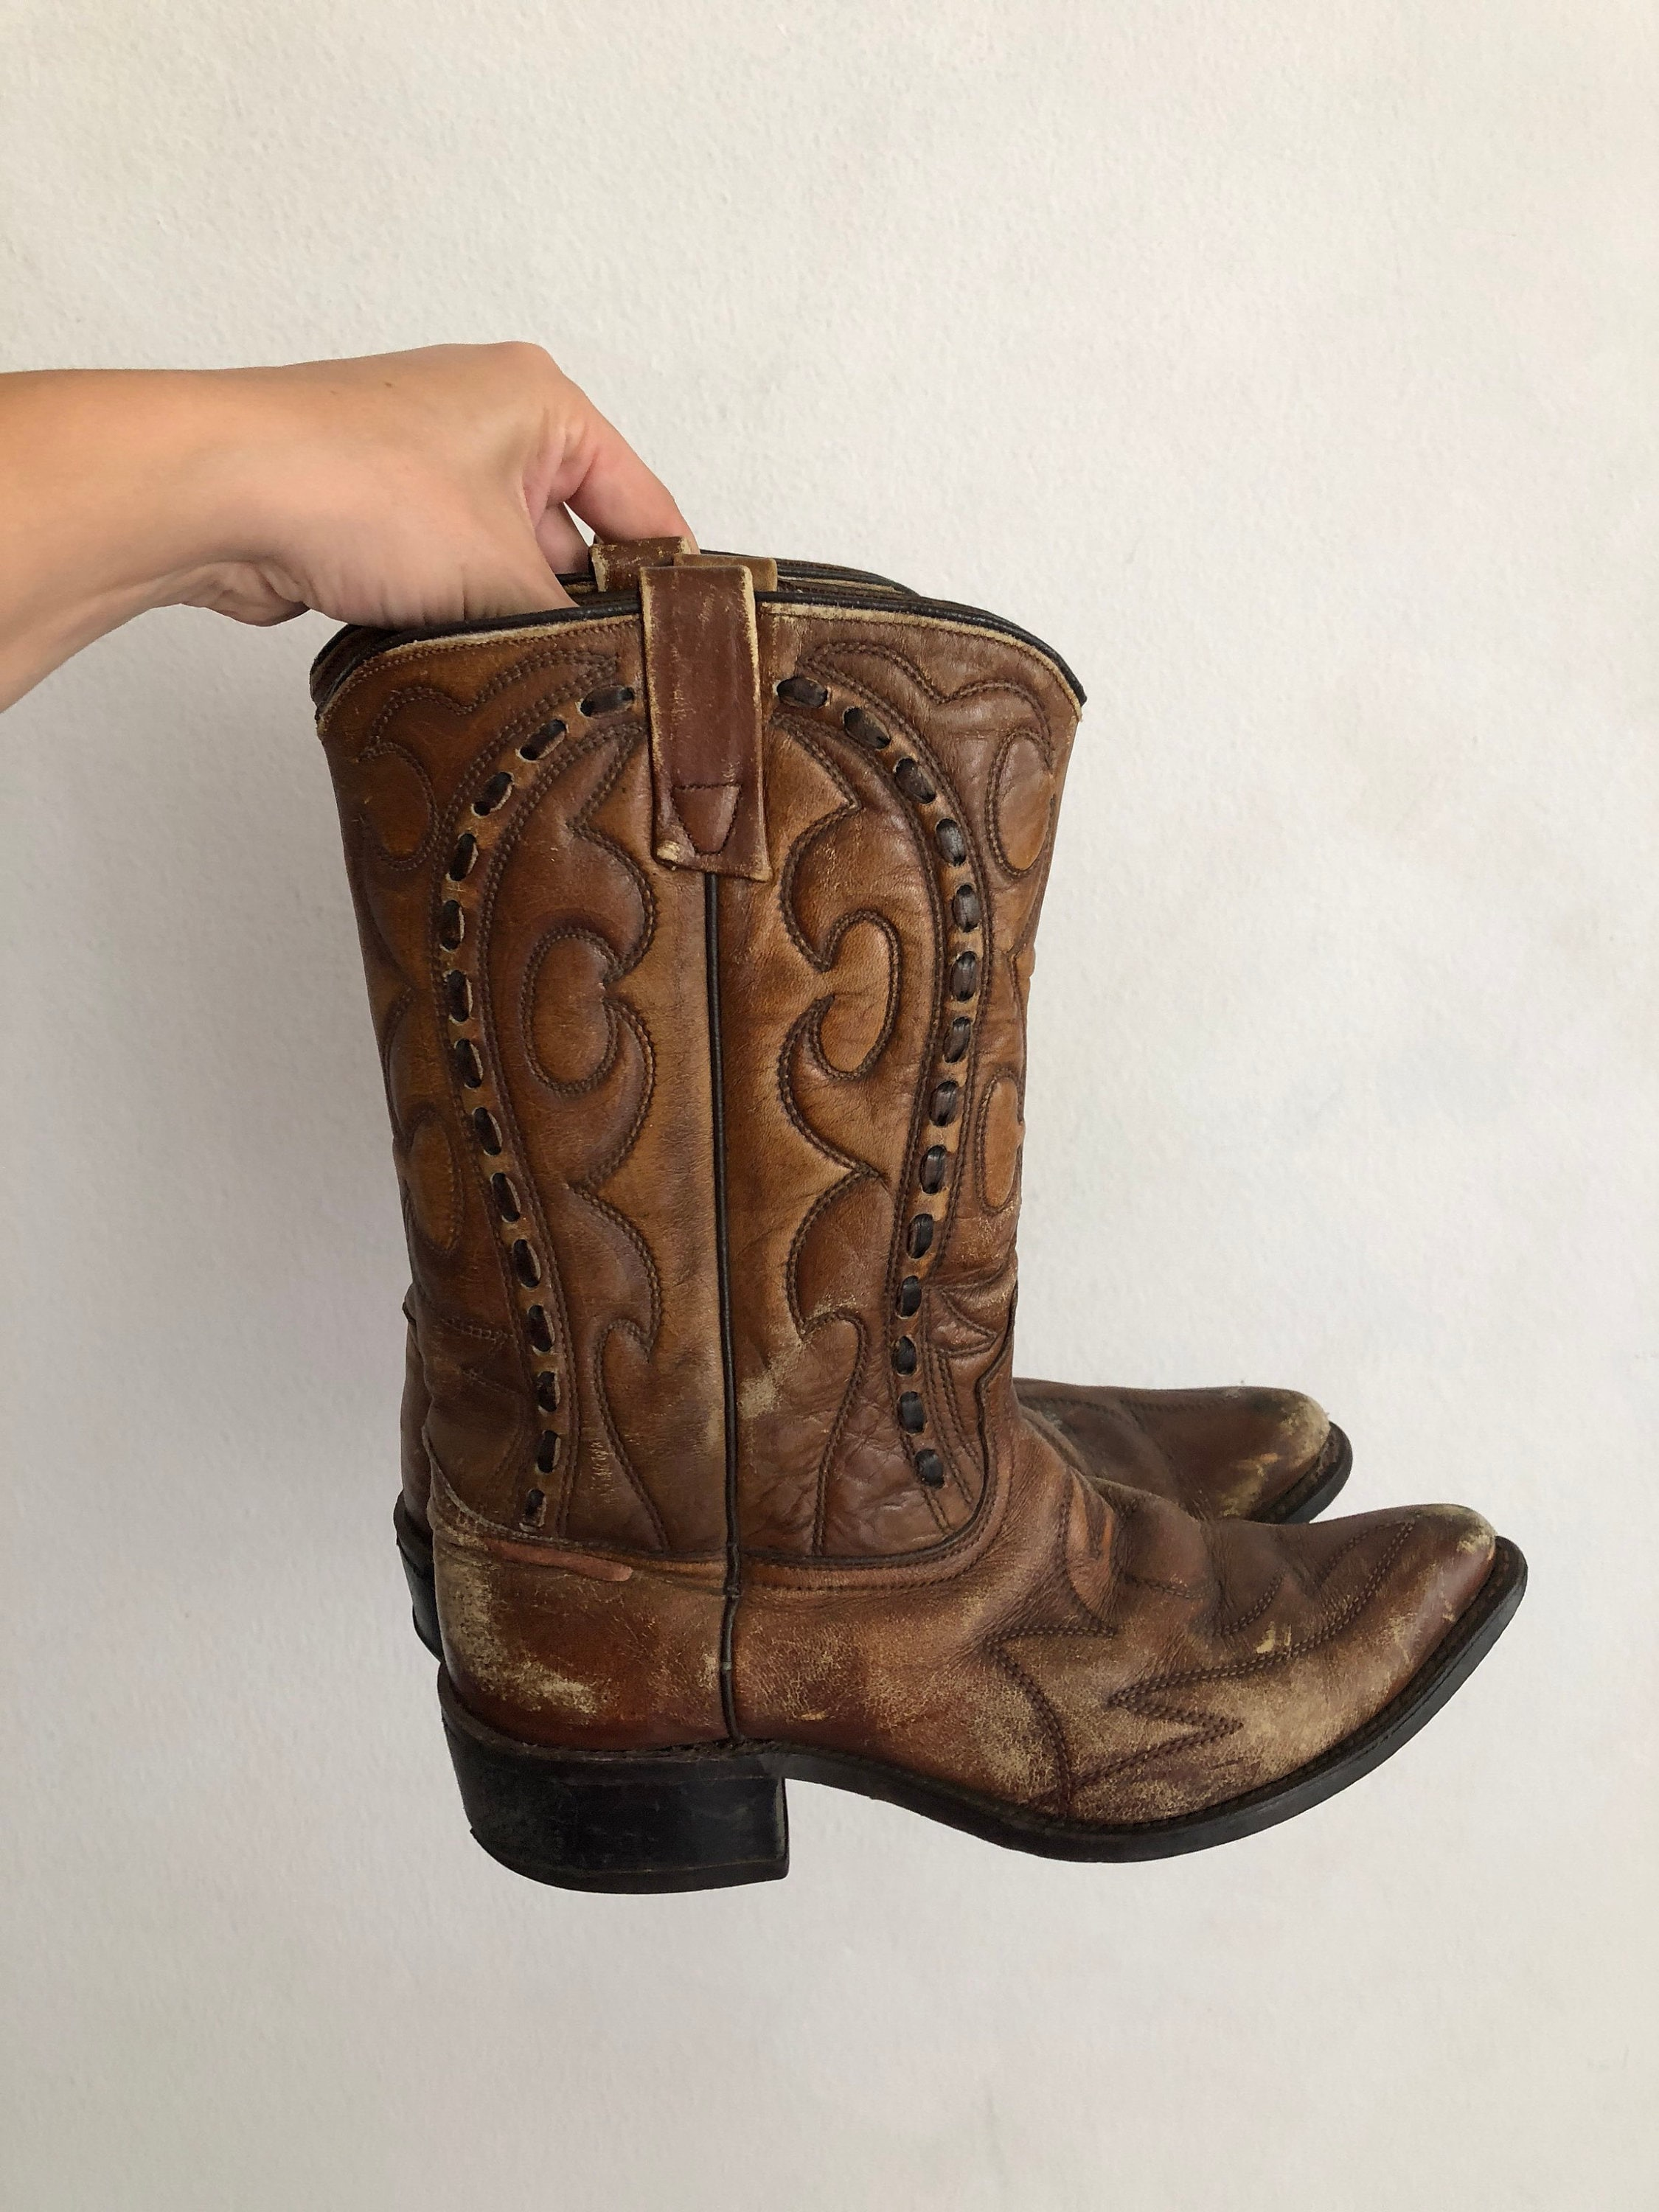 b8f4e3da735 Men's cowboy boots, brown boots made of genuine leather ;boots are  decorated with embroidery and contrasting leather; Western style, size 9.